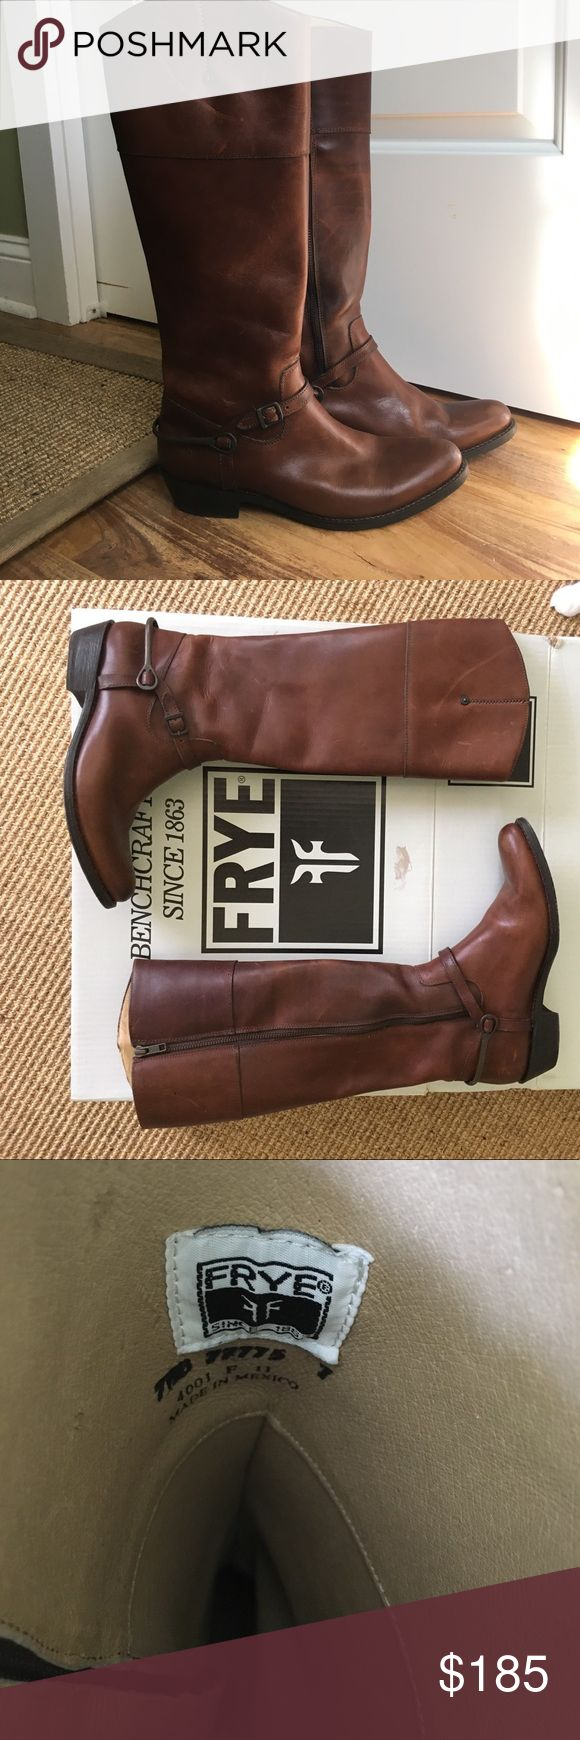 FRYE Melissa Button Boot Gently worn, kept in box FRYE Melissa Button Boots. Frye Shoes Winter & Rain Boots